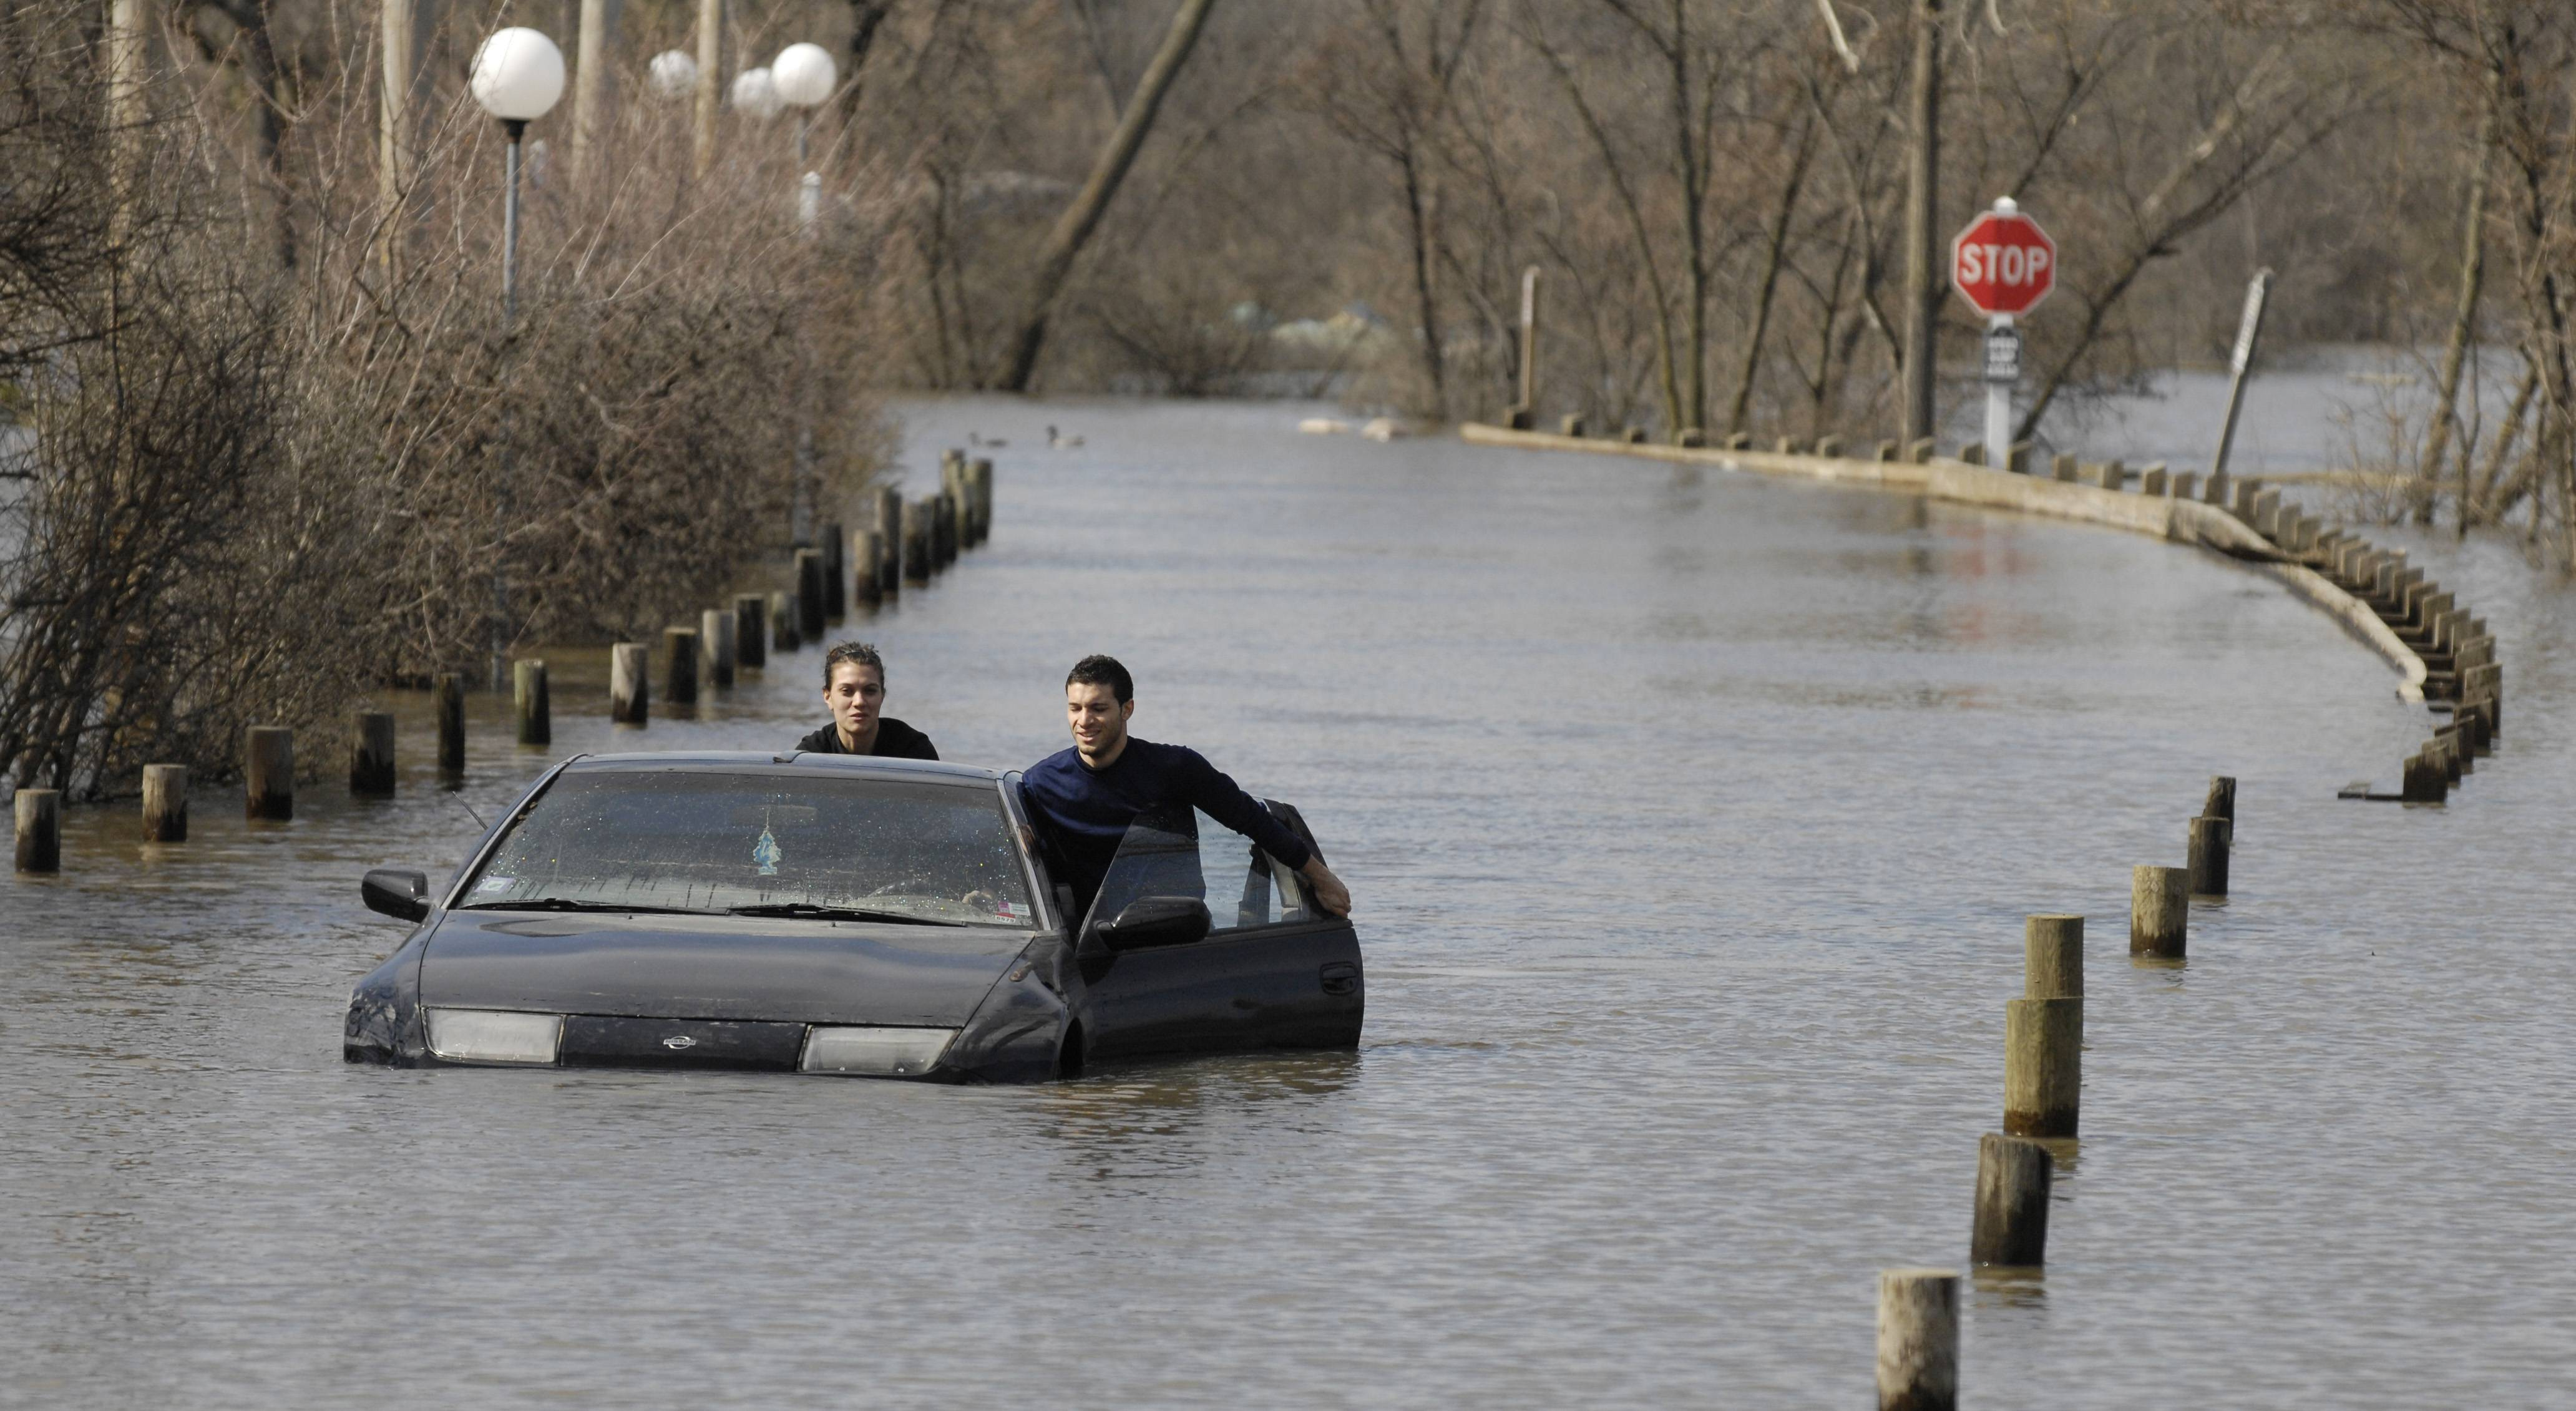 DuPage County will receive $18.9 million in federal grant money because of the widespread flooding of April 2013. The funding is in addition to the $7 million previously approved for the county.